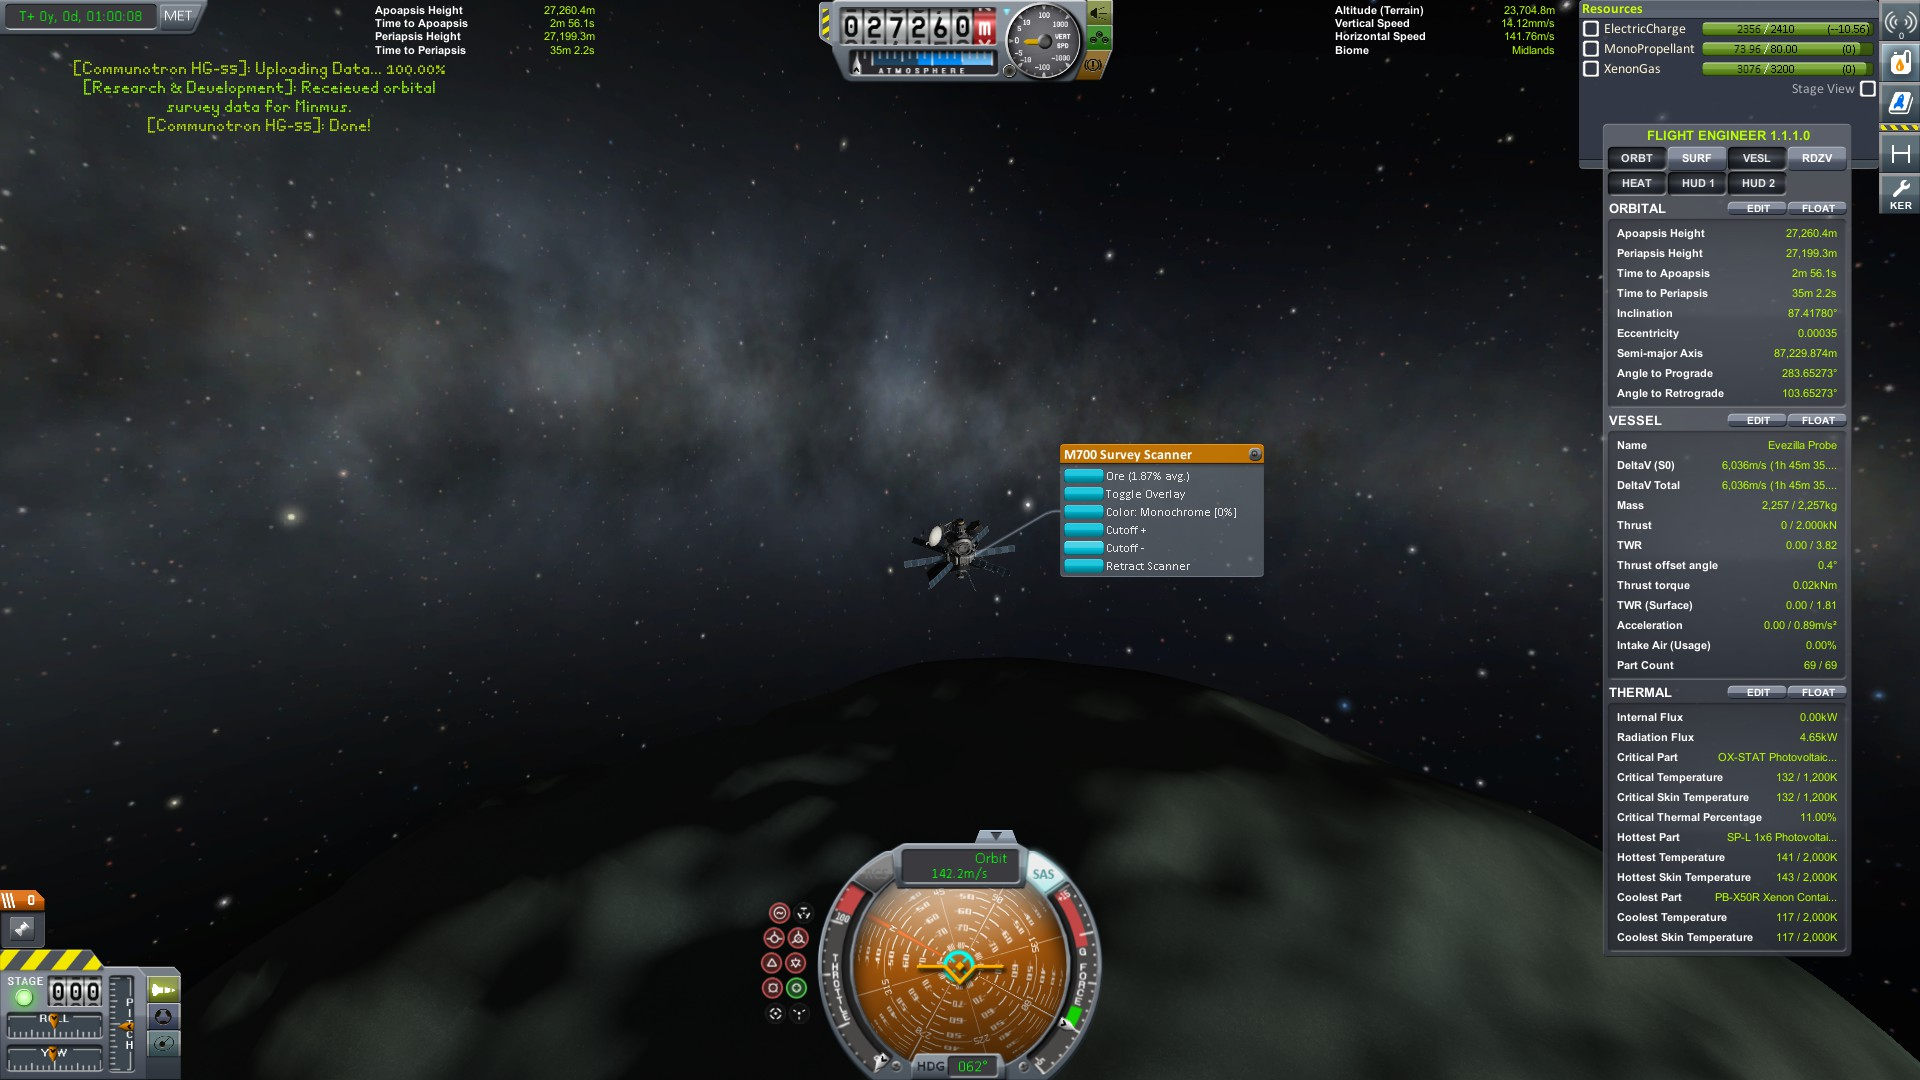 Kerbal Space Program Thread V1 0 - Lets capture that Asteroid